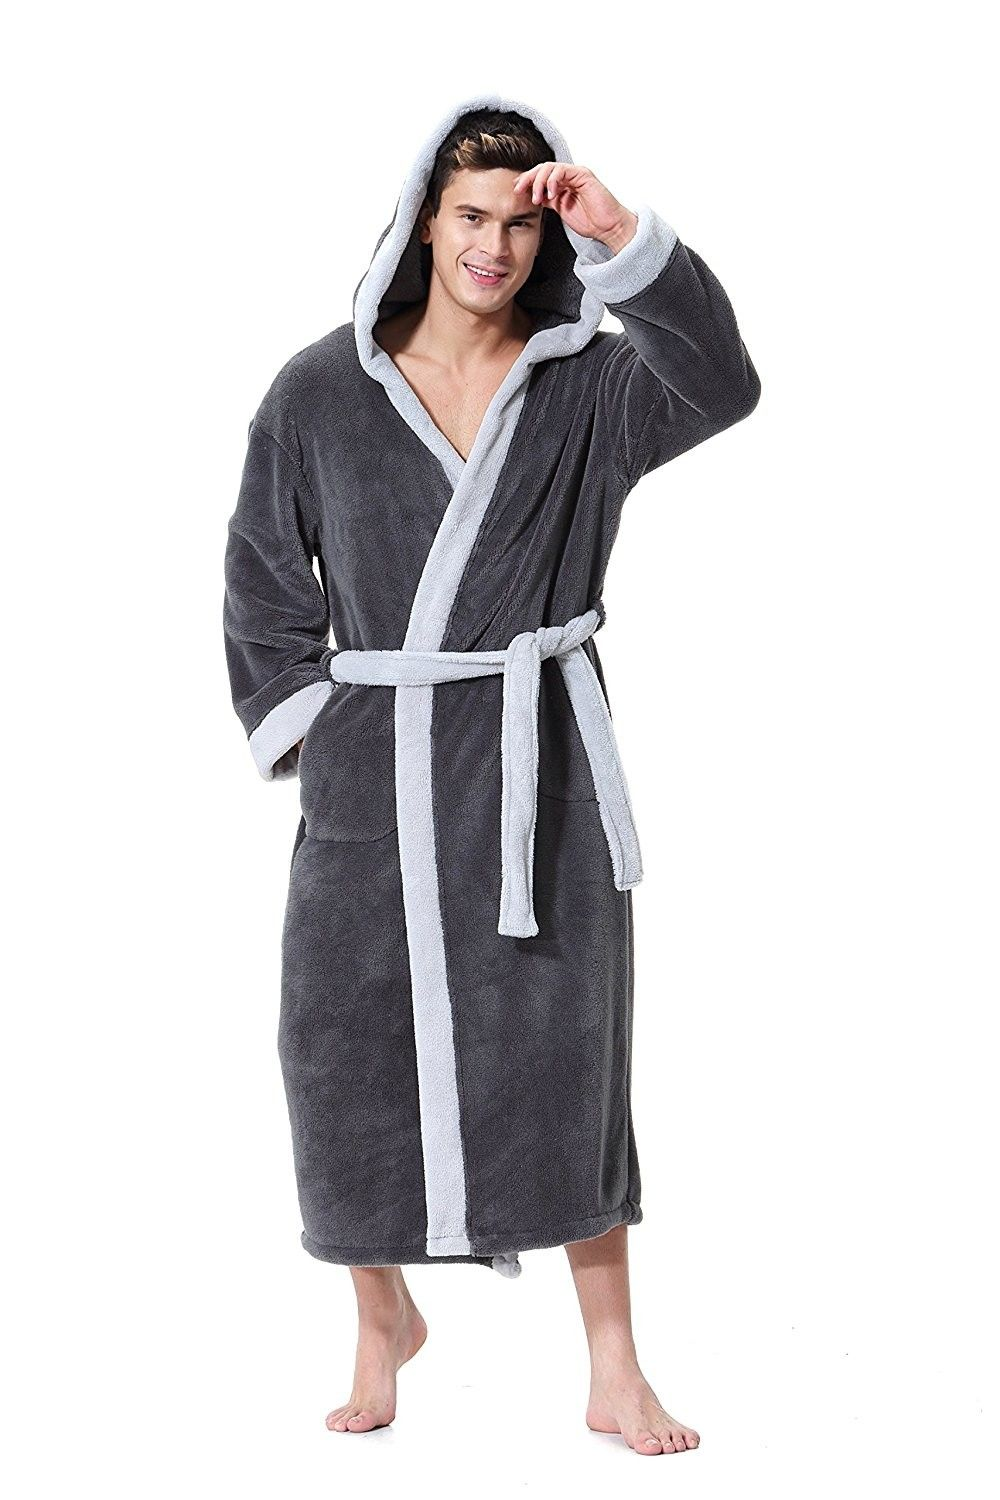 43b6cbdd49 Mens hooded bathrobe gray light gray soft spa kimono shawl jpg 1000x1500 Long  hooded robe men